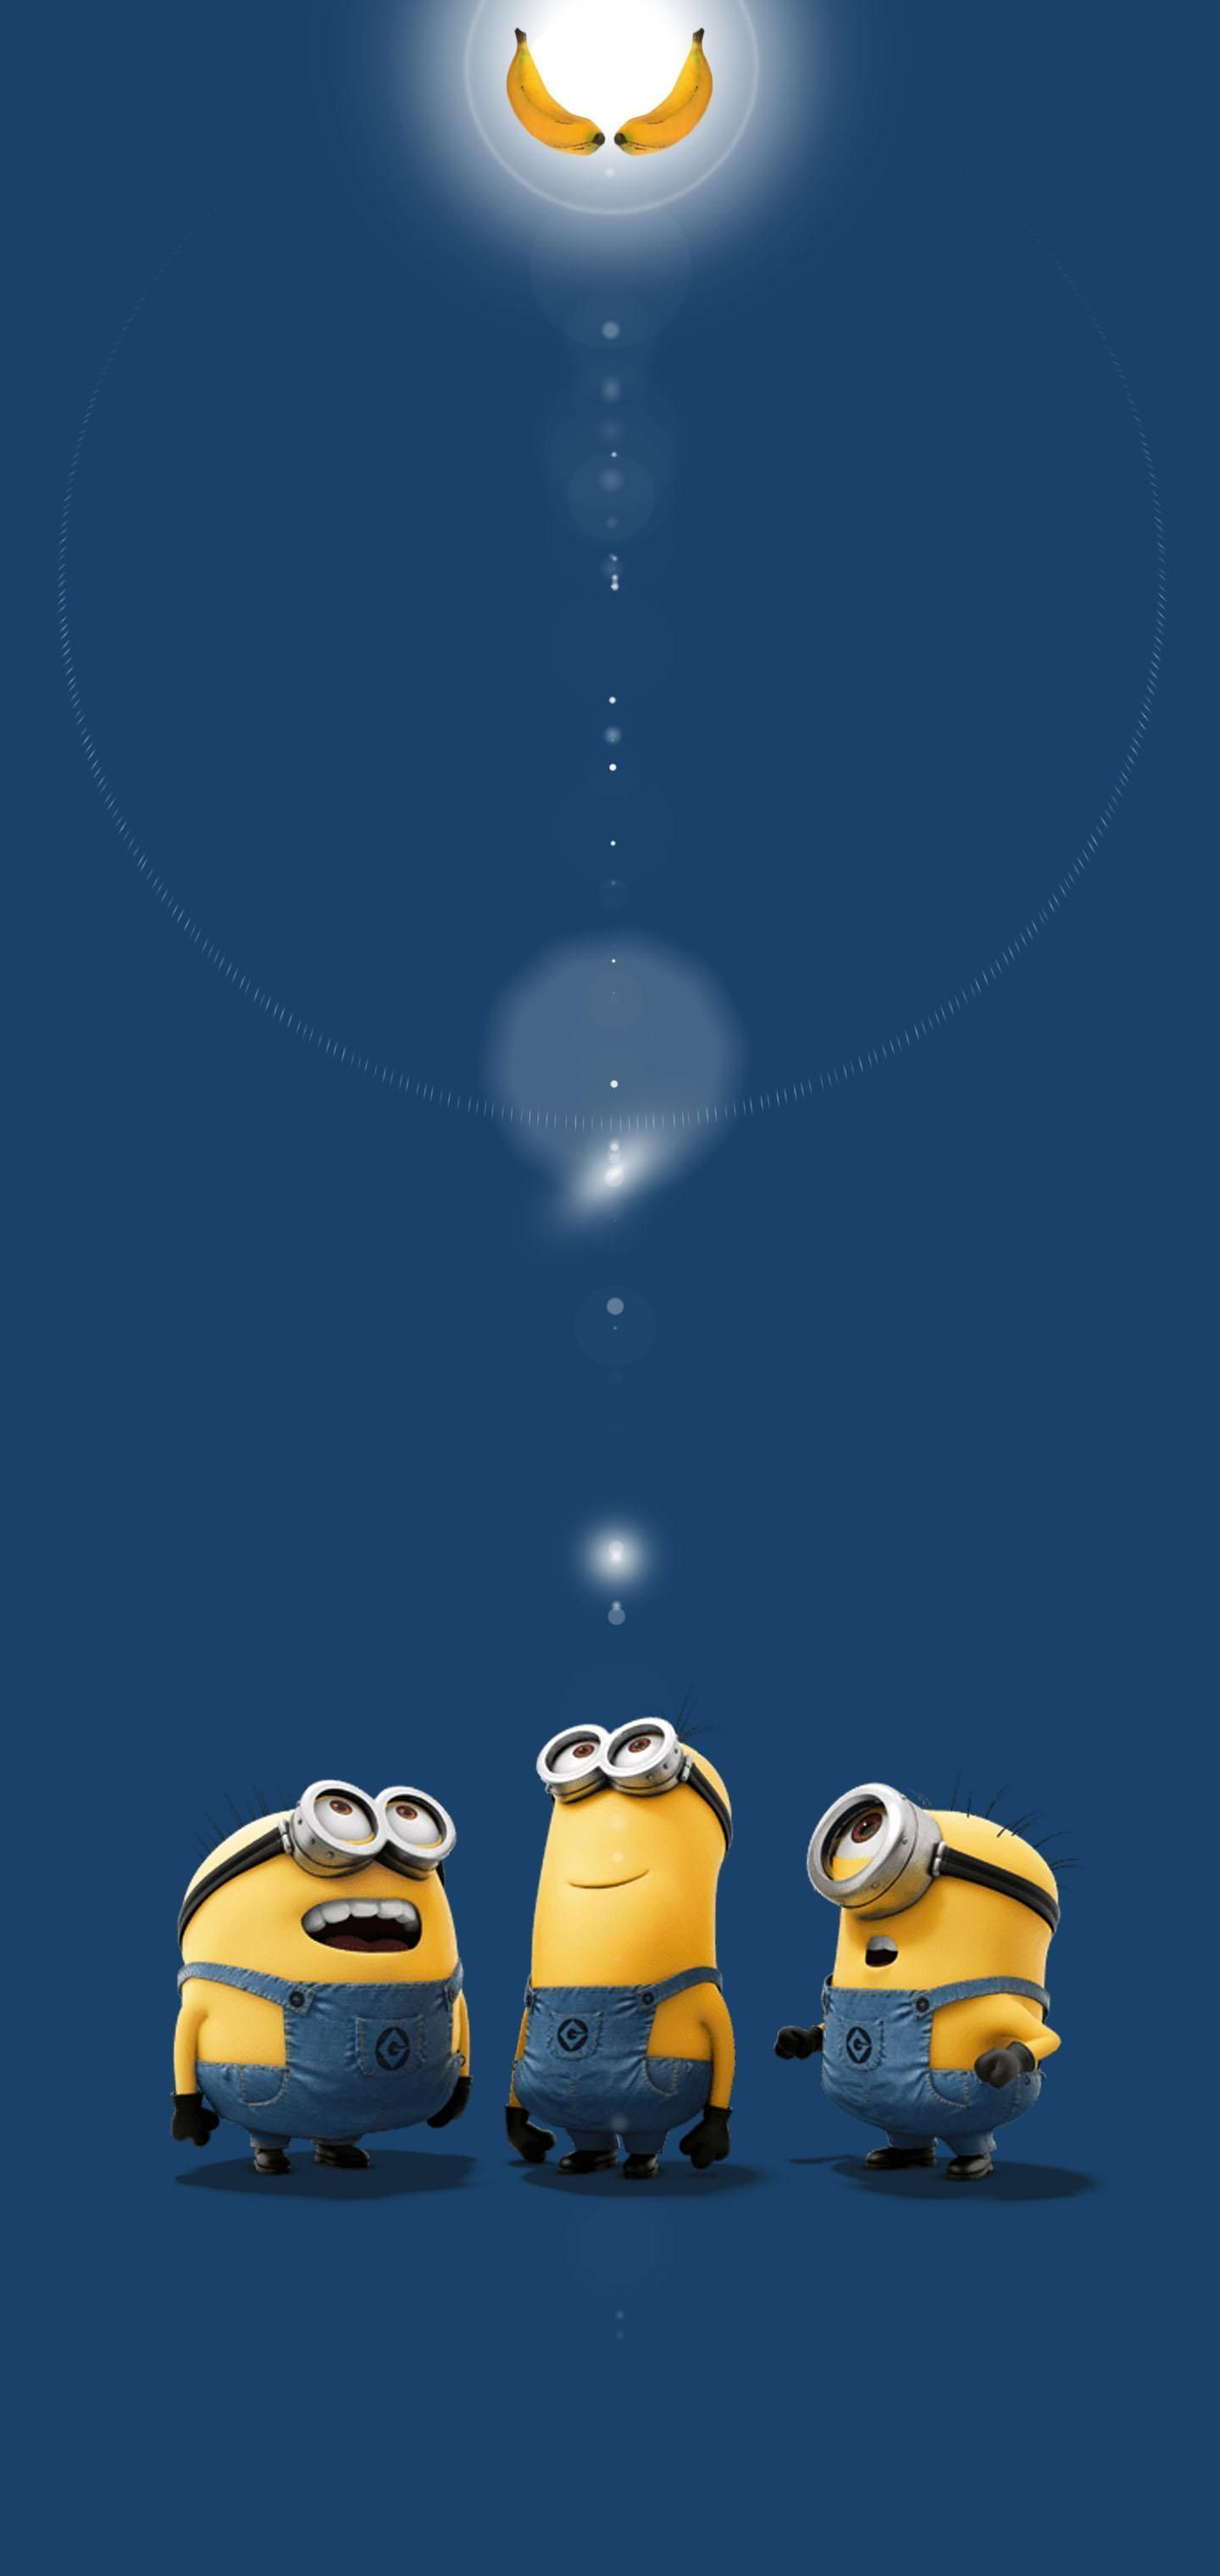 A50 Samsung Wallpaper In 2020 Minions Wallpaper Galaxy Wallpaper Samsung Wallpaper